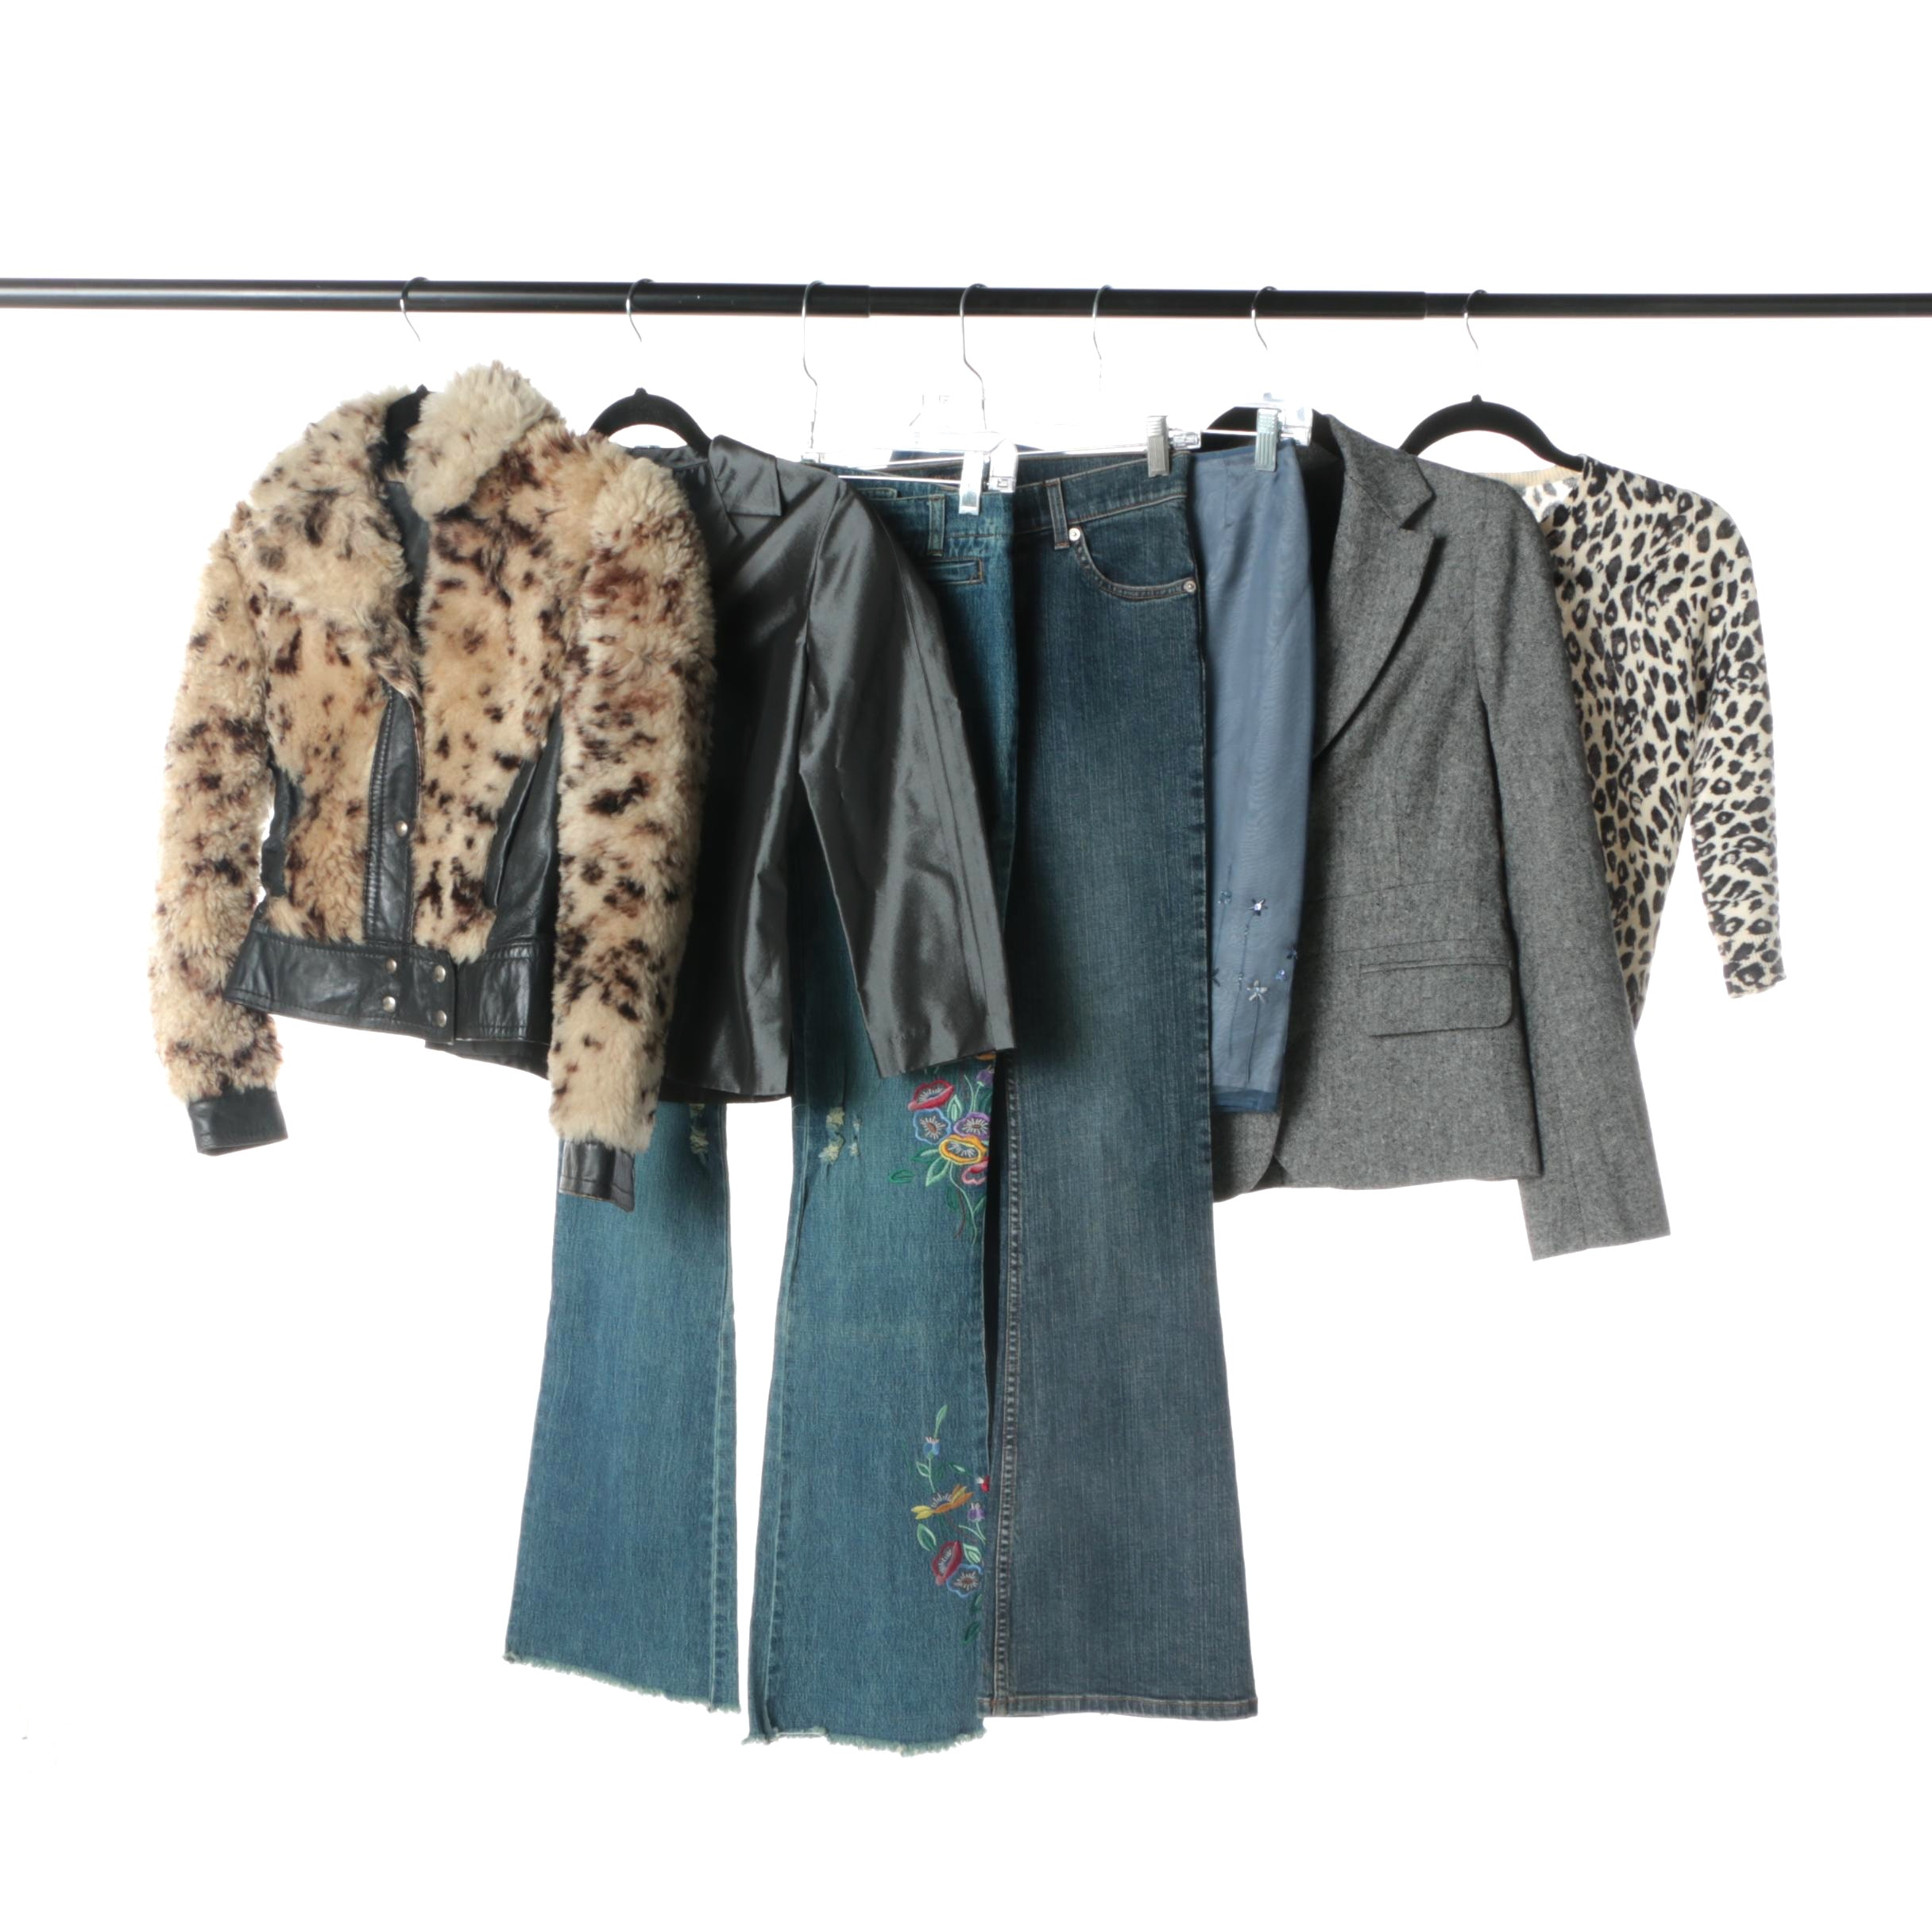 Women's Separates Including Bebe, Juicy Couture and BCBG Max Azria